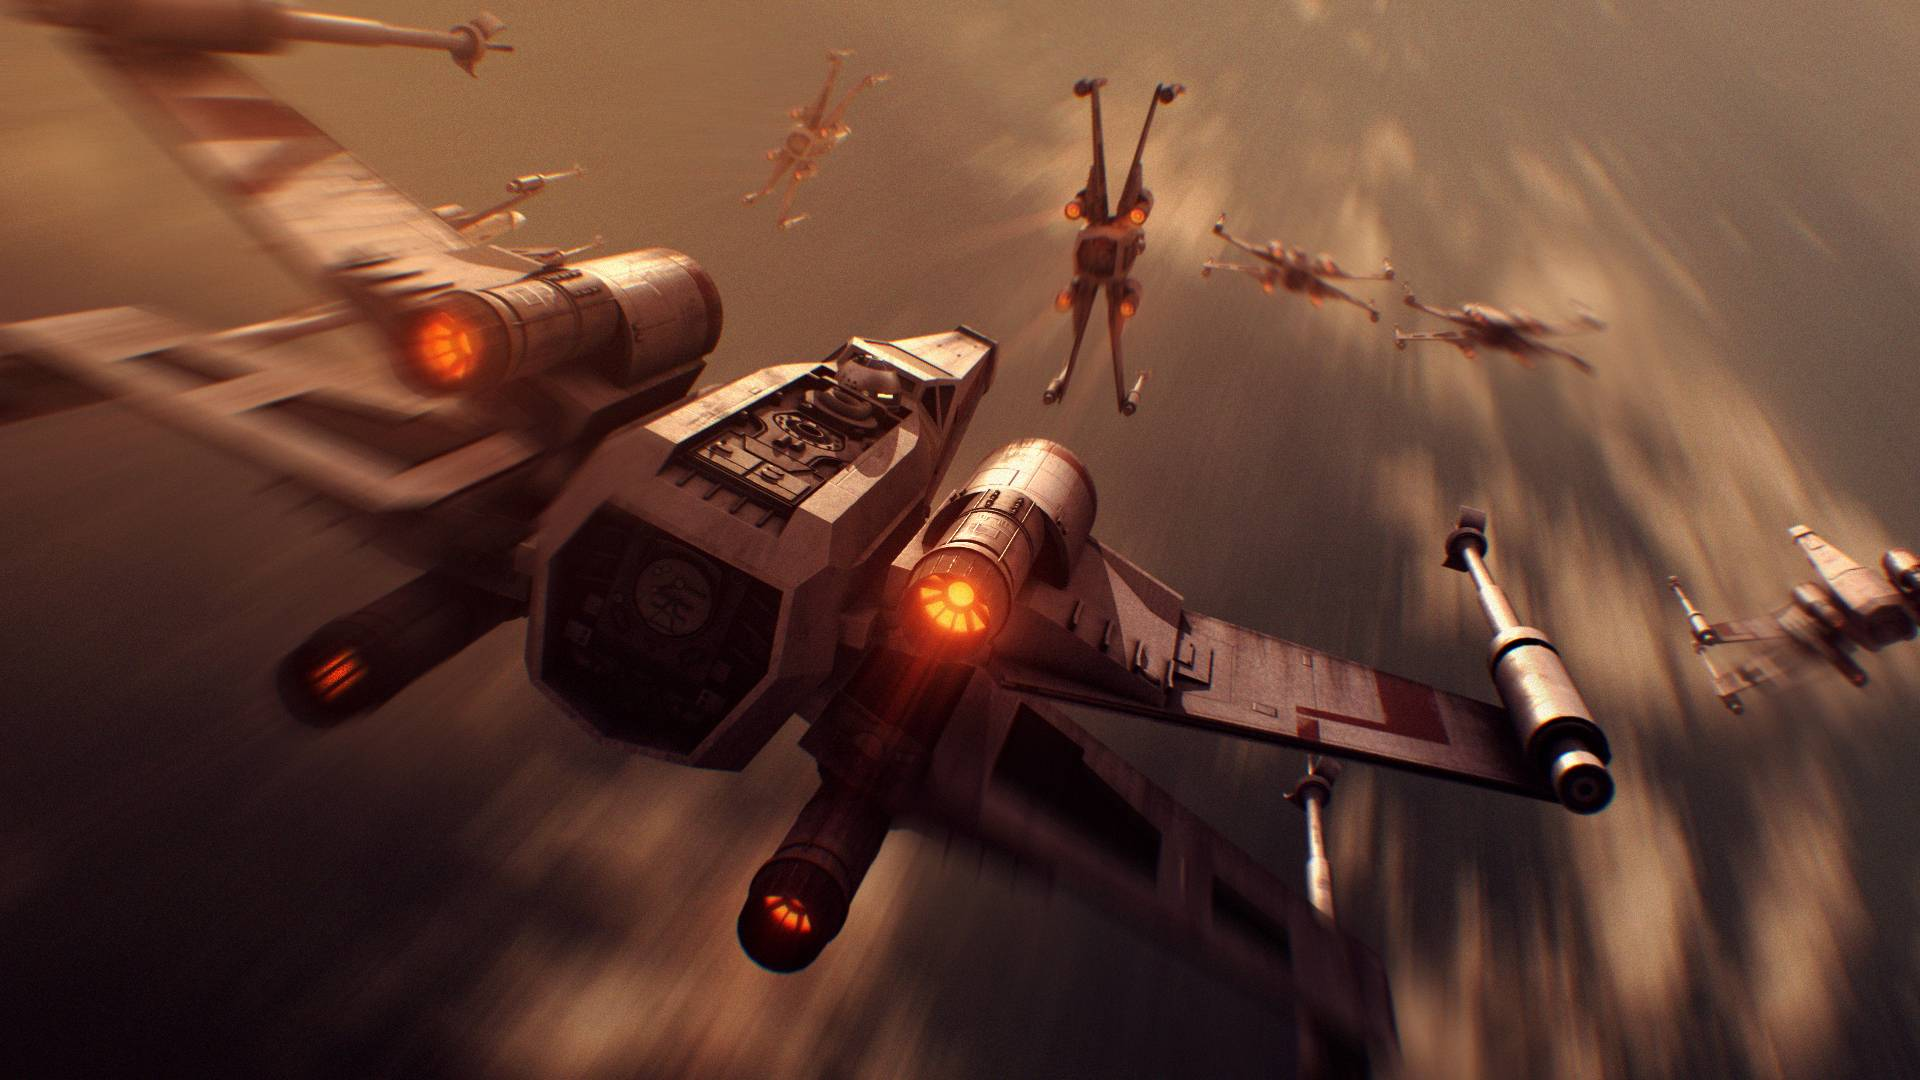 X Wing Wallpaper Posted By Christopher Sellers